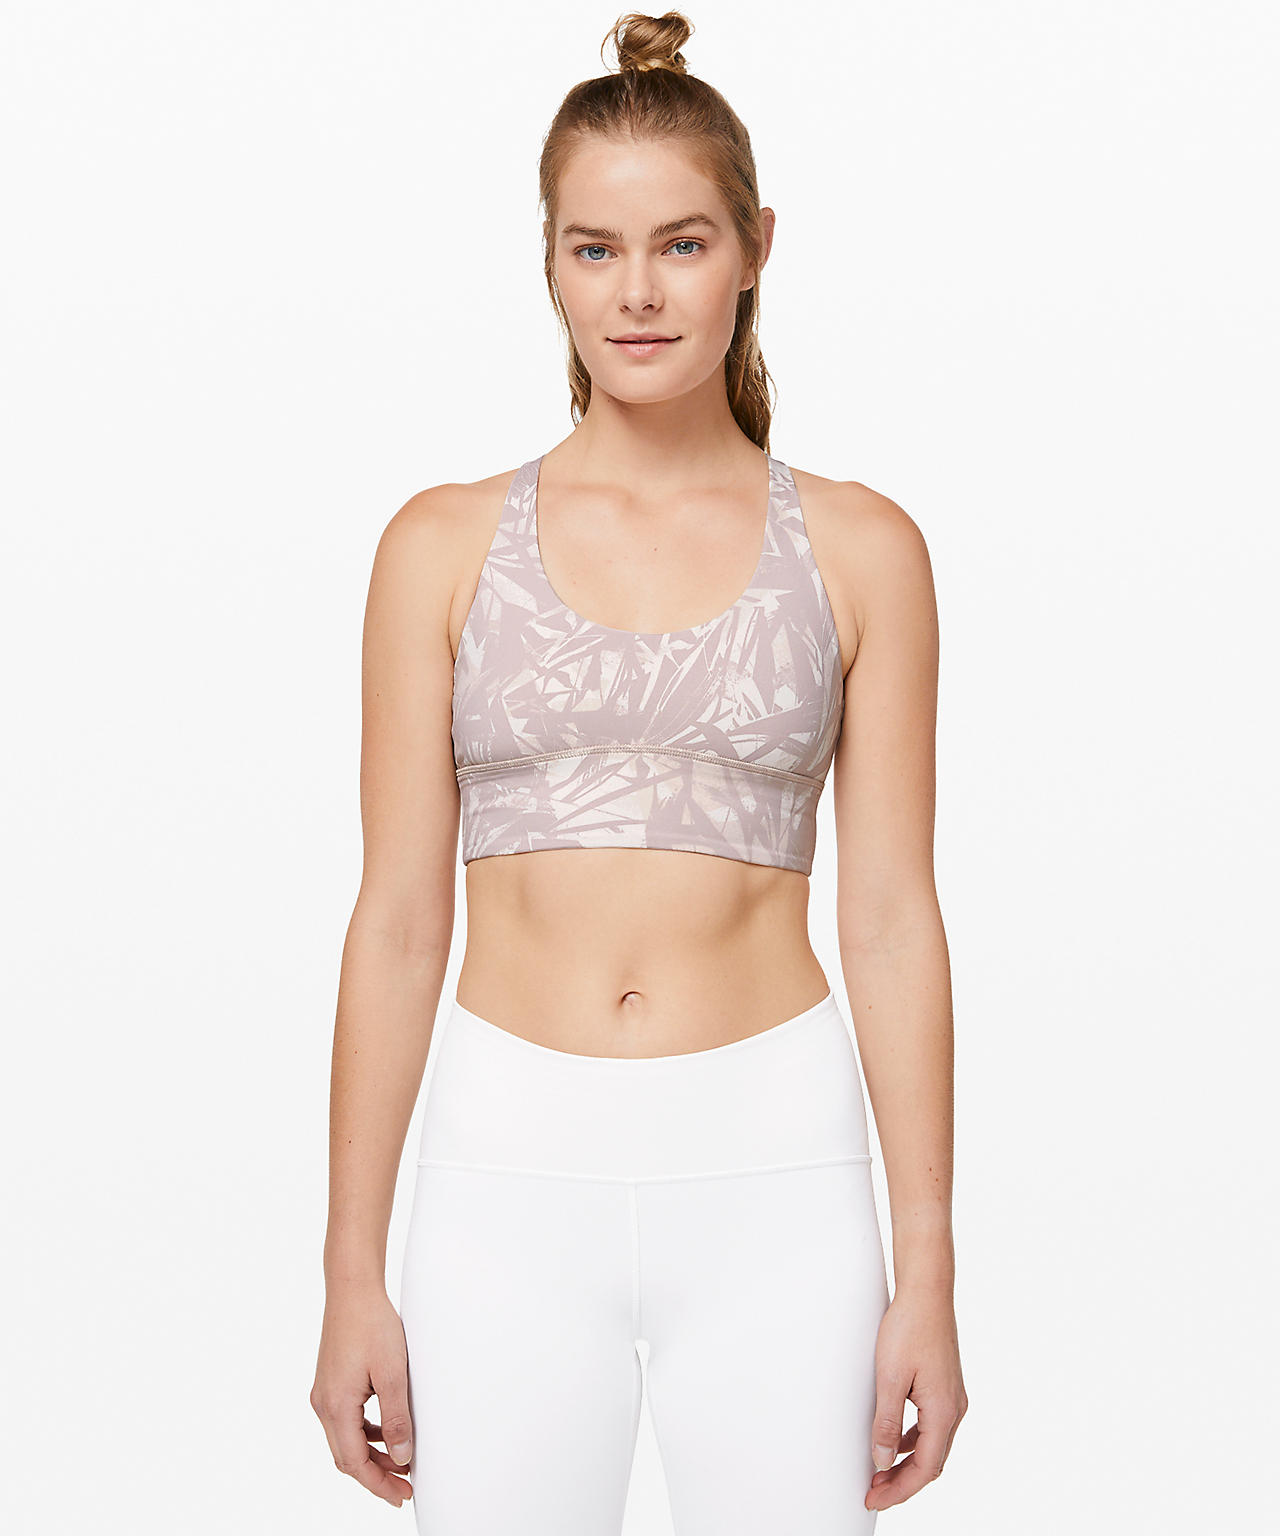 Free To Be Moved Bra, Lululemon Upload